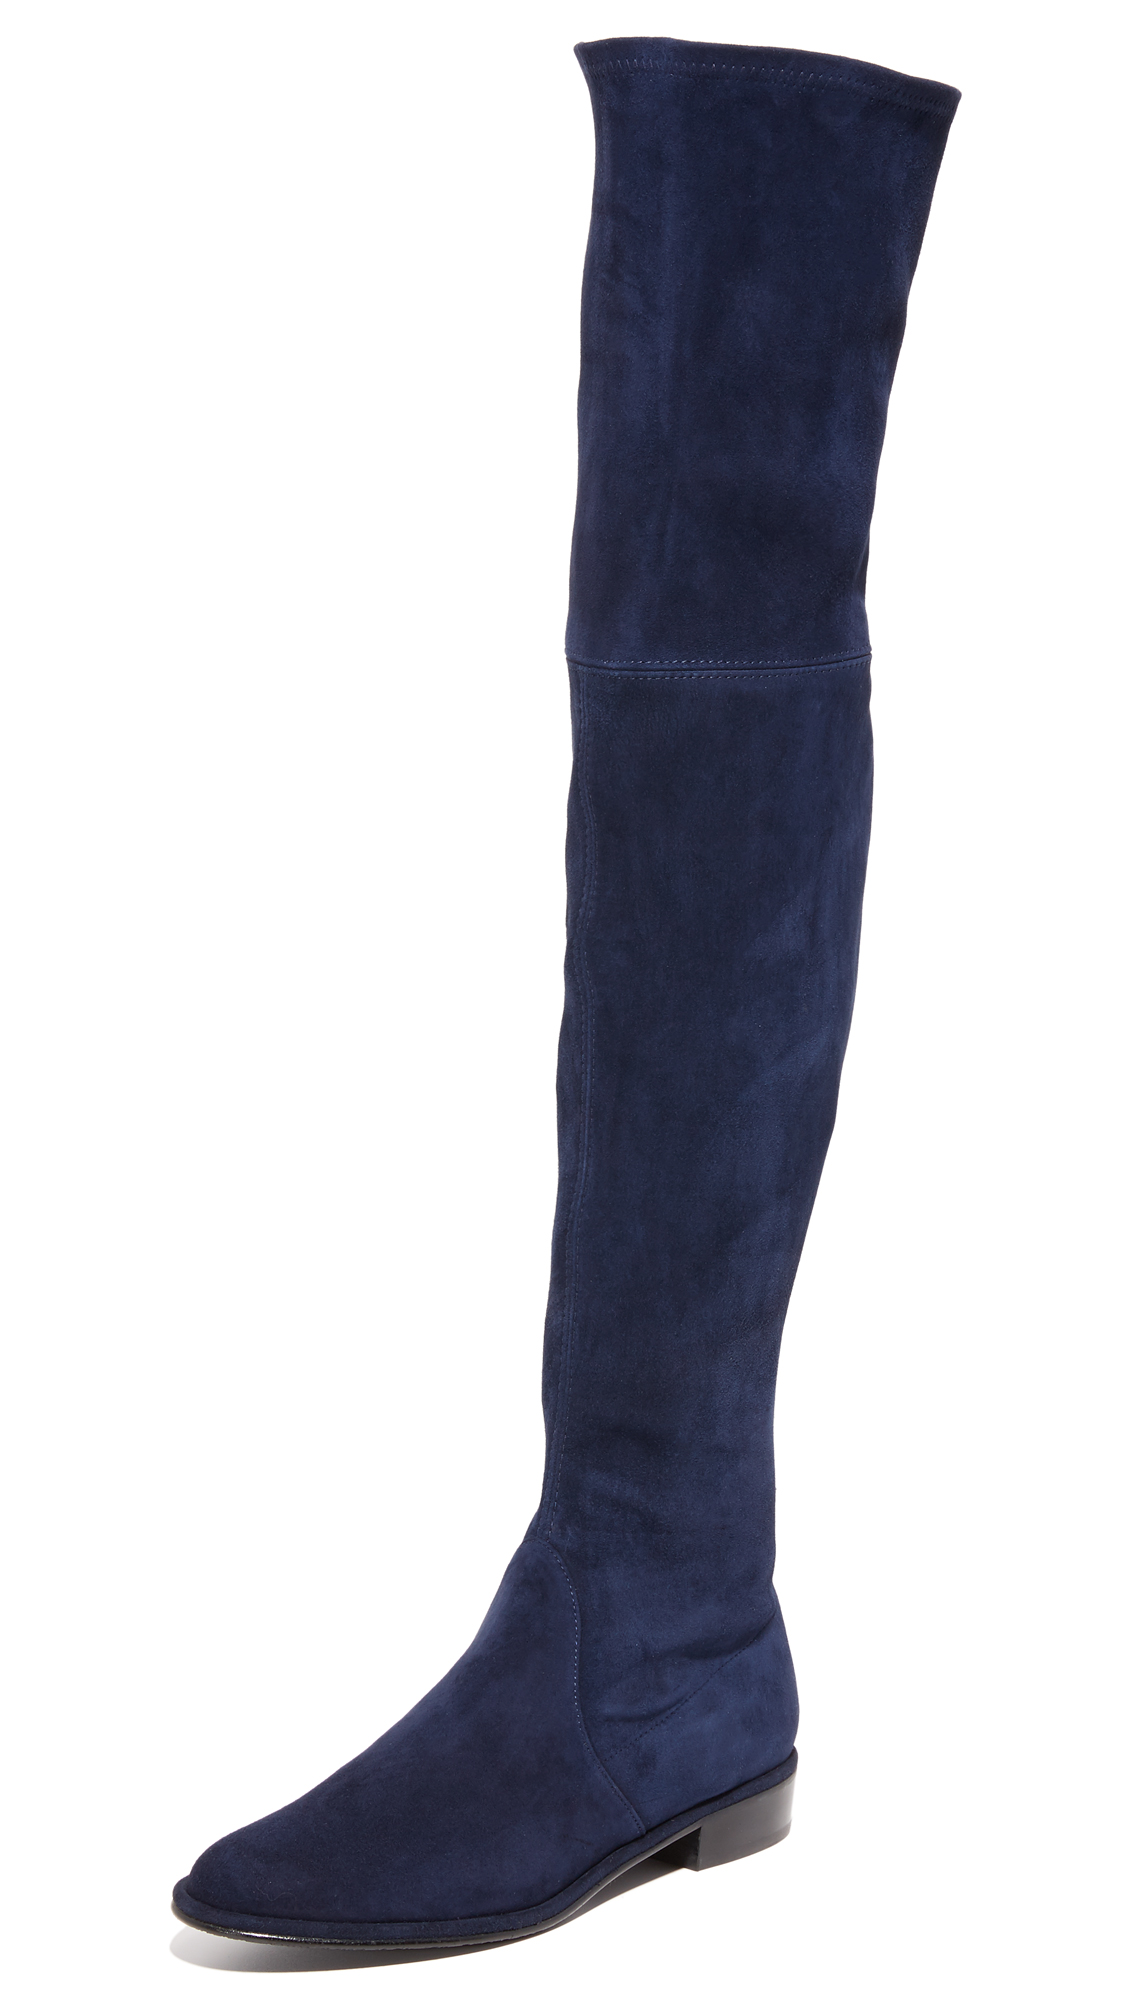 Over the knee Stuart Weitzman boots in luxe, stretch suede. Decorative exposed zipper at the back. Stacked heel and rubber sole. Leather: Cowhide. Made in Spain. This item cannot be gift boxed. Measurements Heel: 0.75in / 20mm